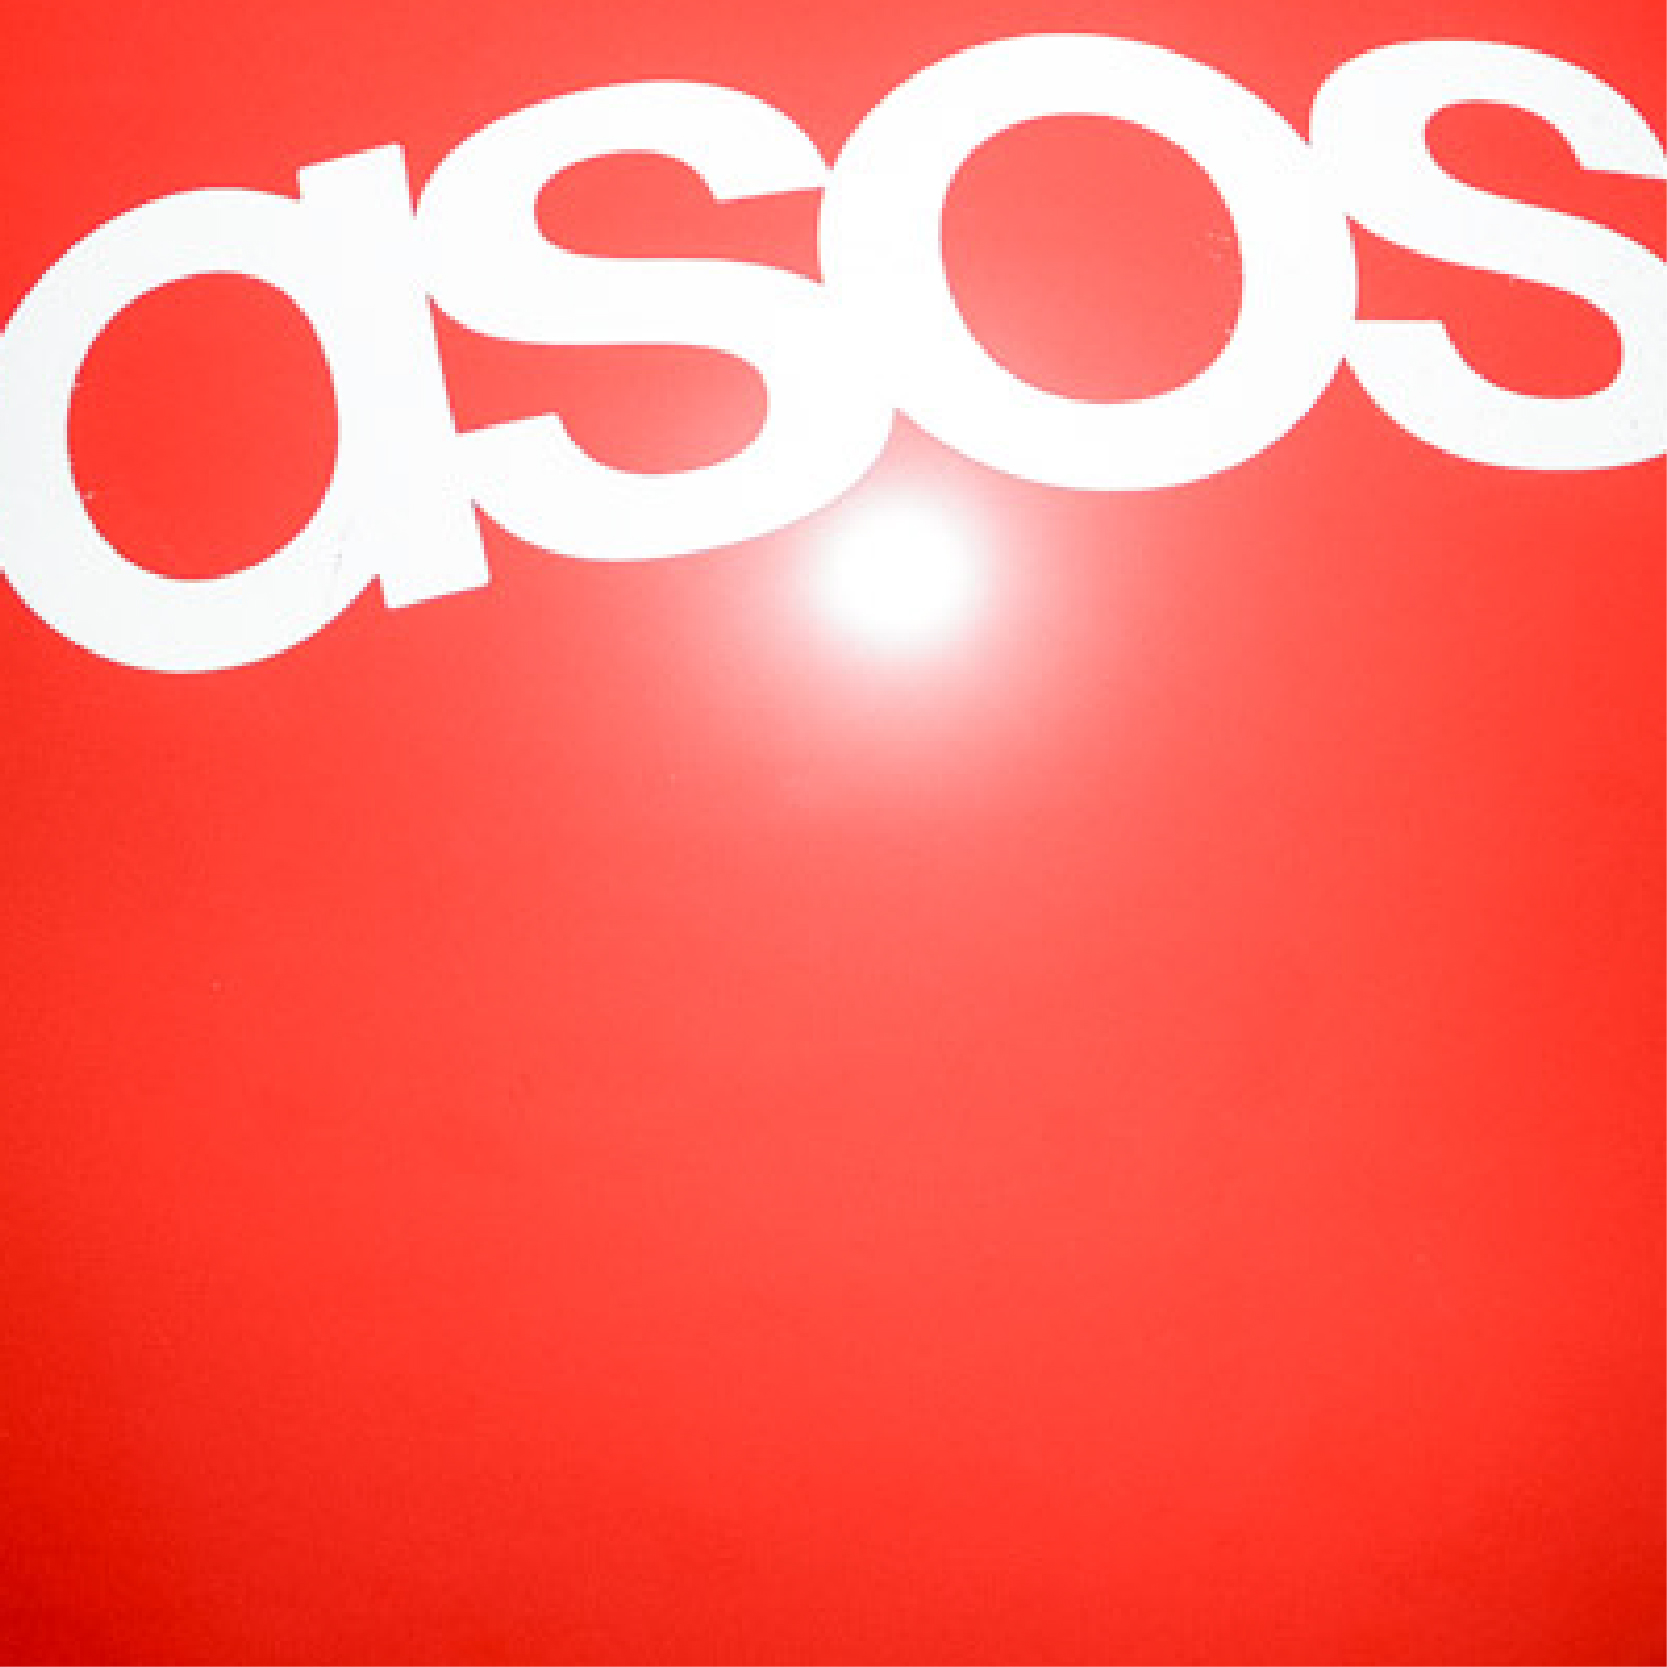 009 - ASOS Colour Control.jpg